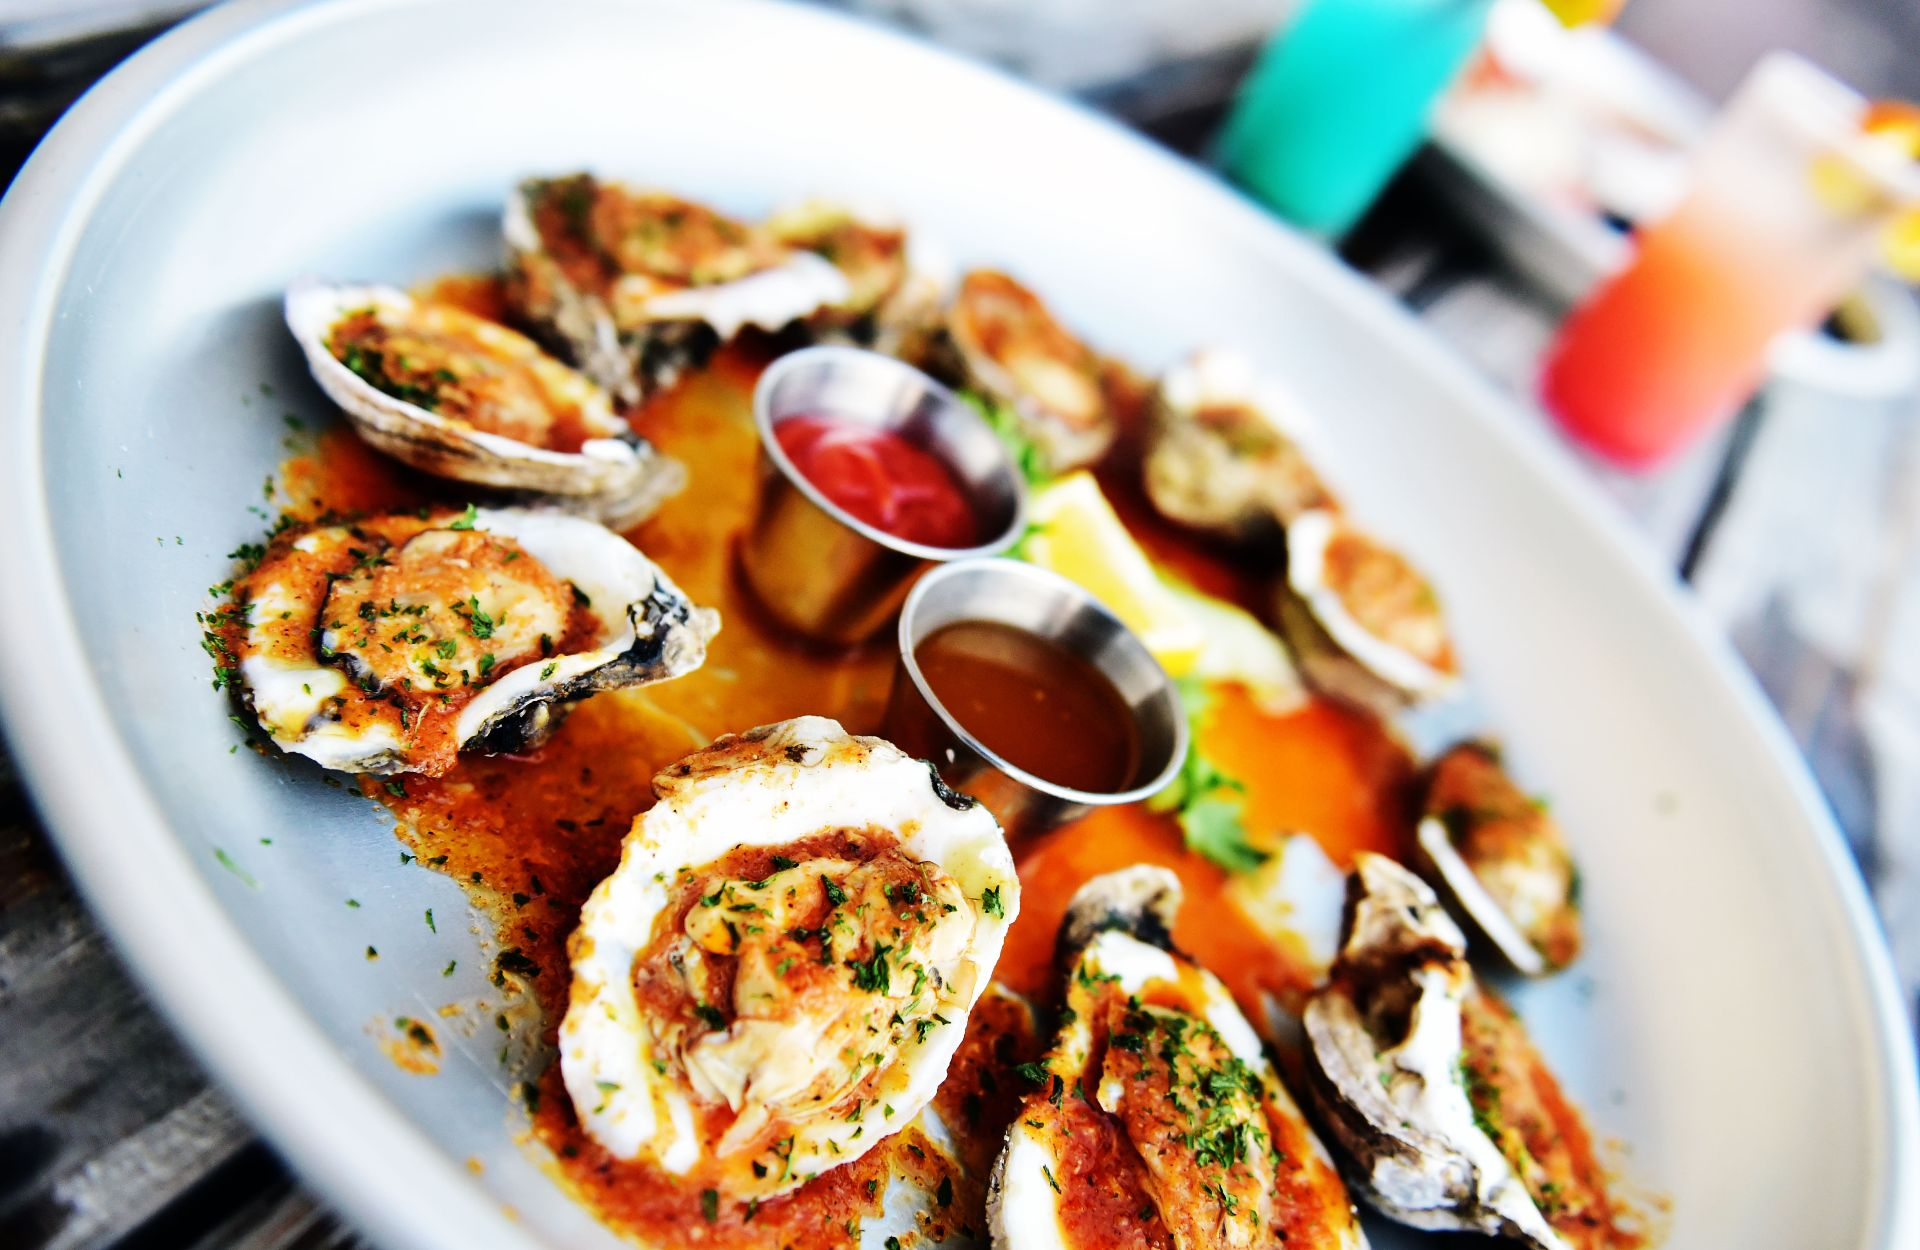 Oysters in a circular plate with sauces in the center.